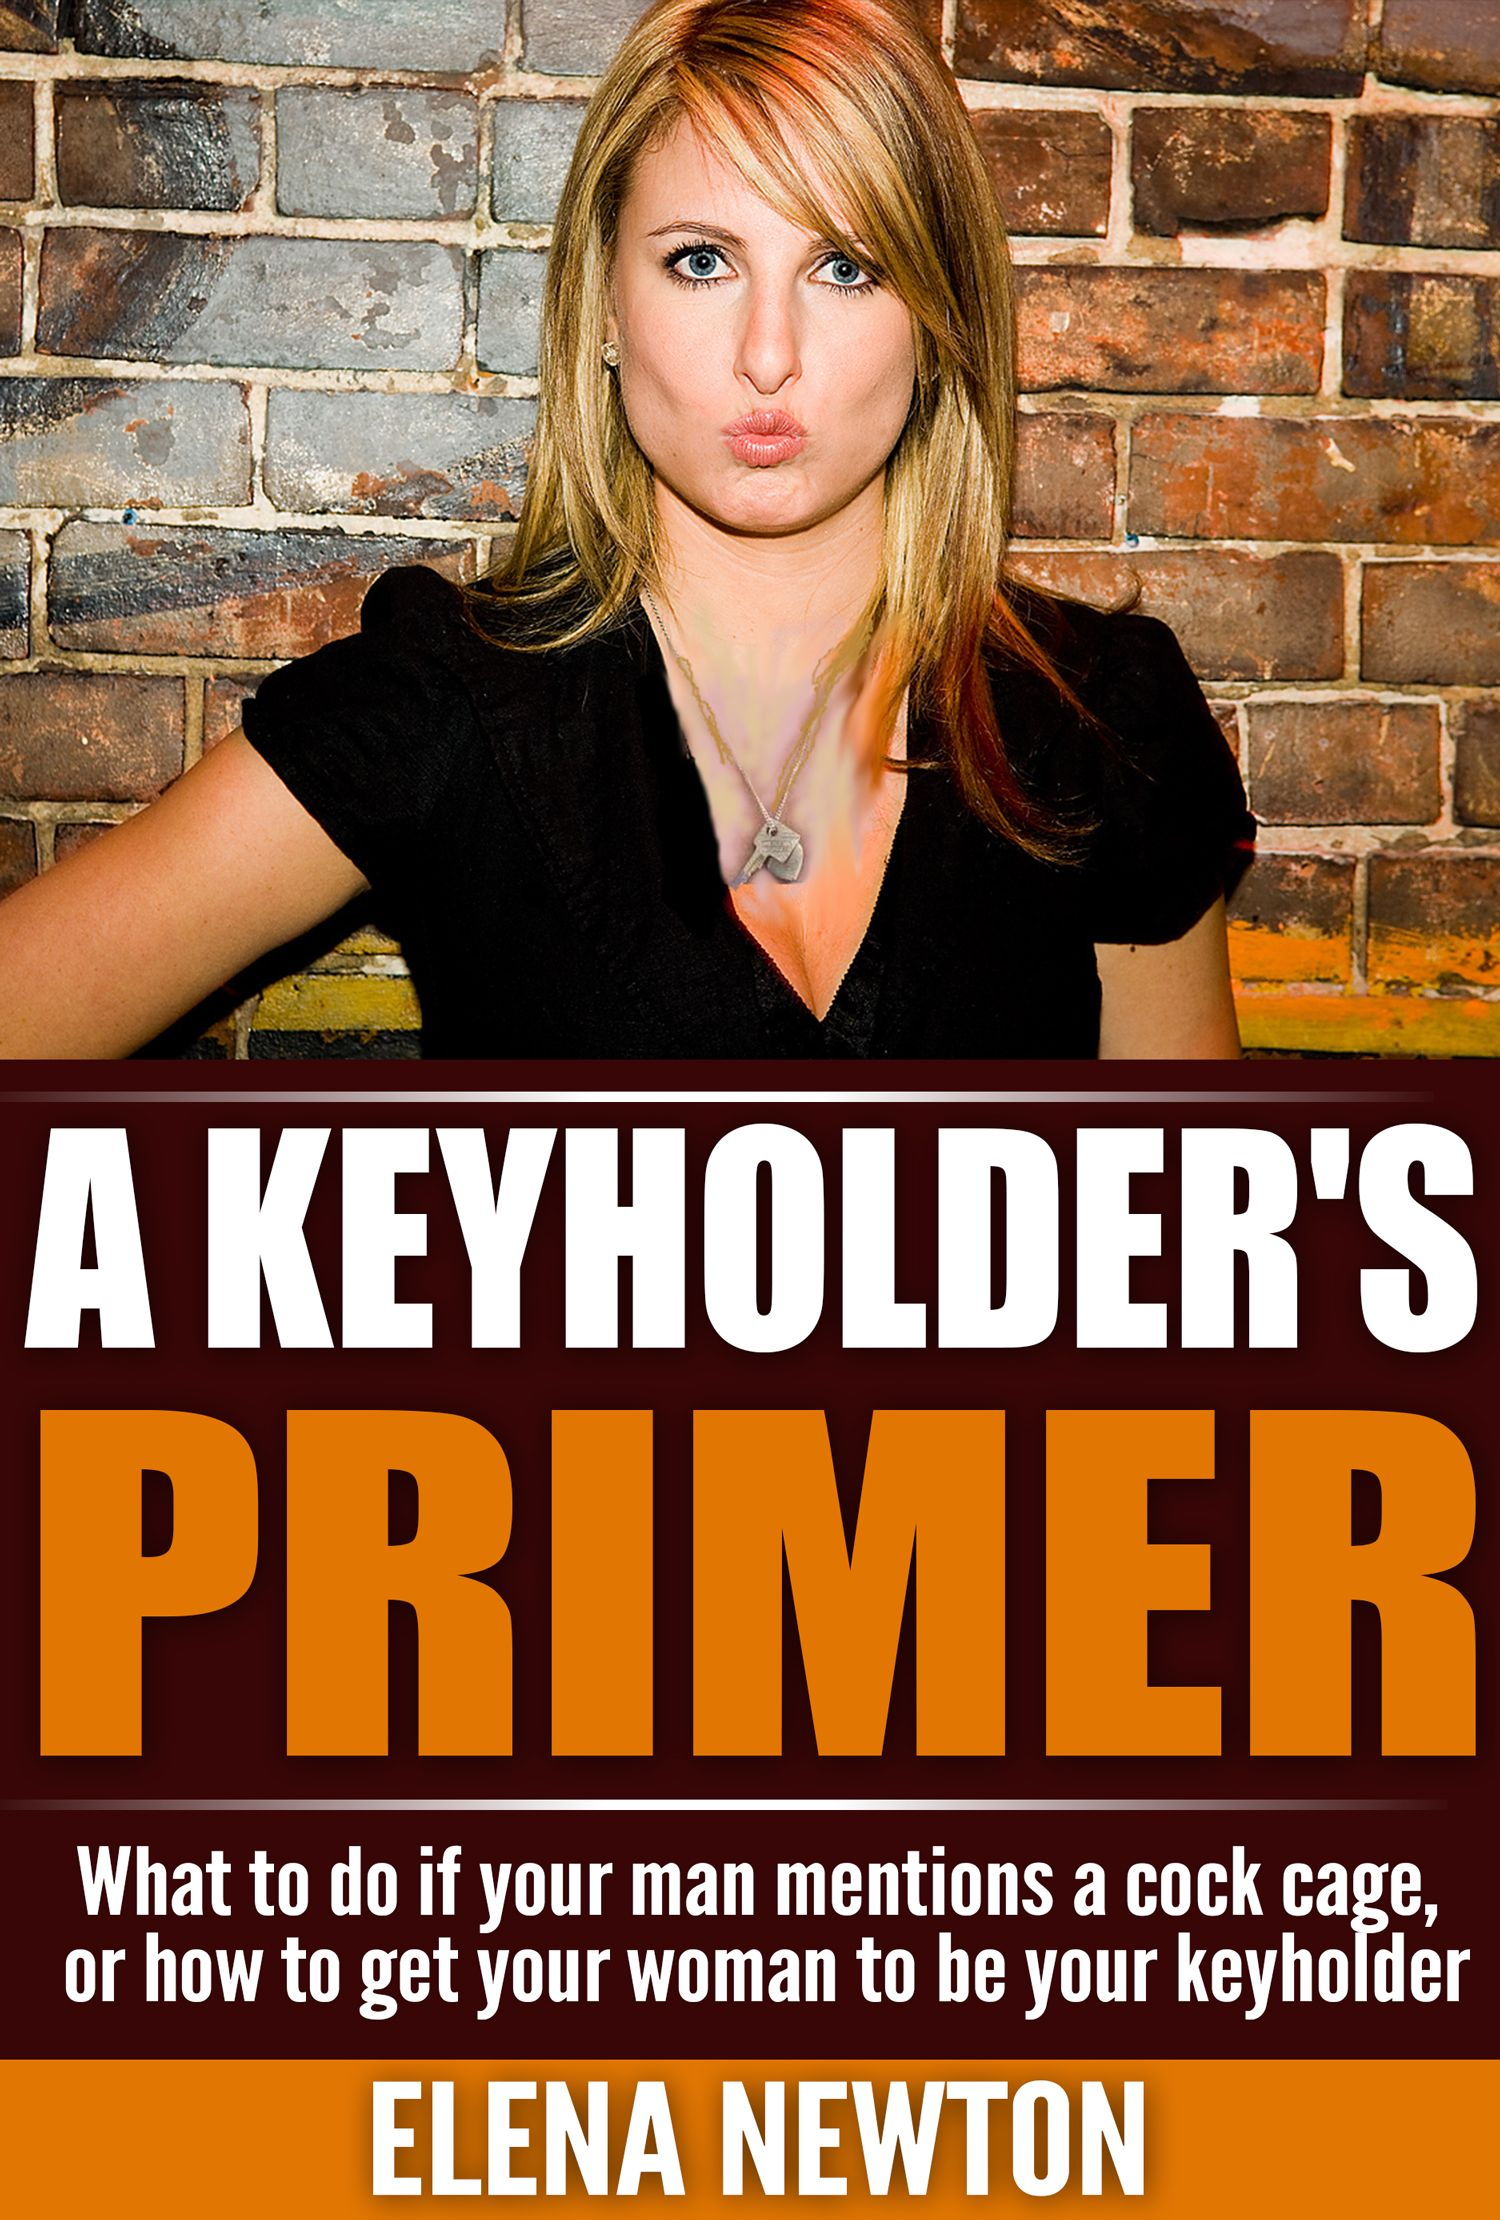 The Key-Holder's Manual is the definitive work on chastity devices, their  benefits, and how to be a key-holder.